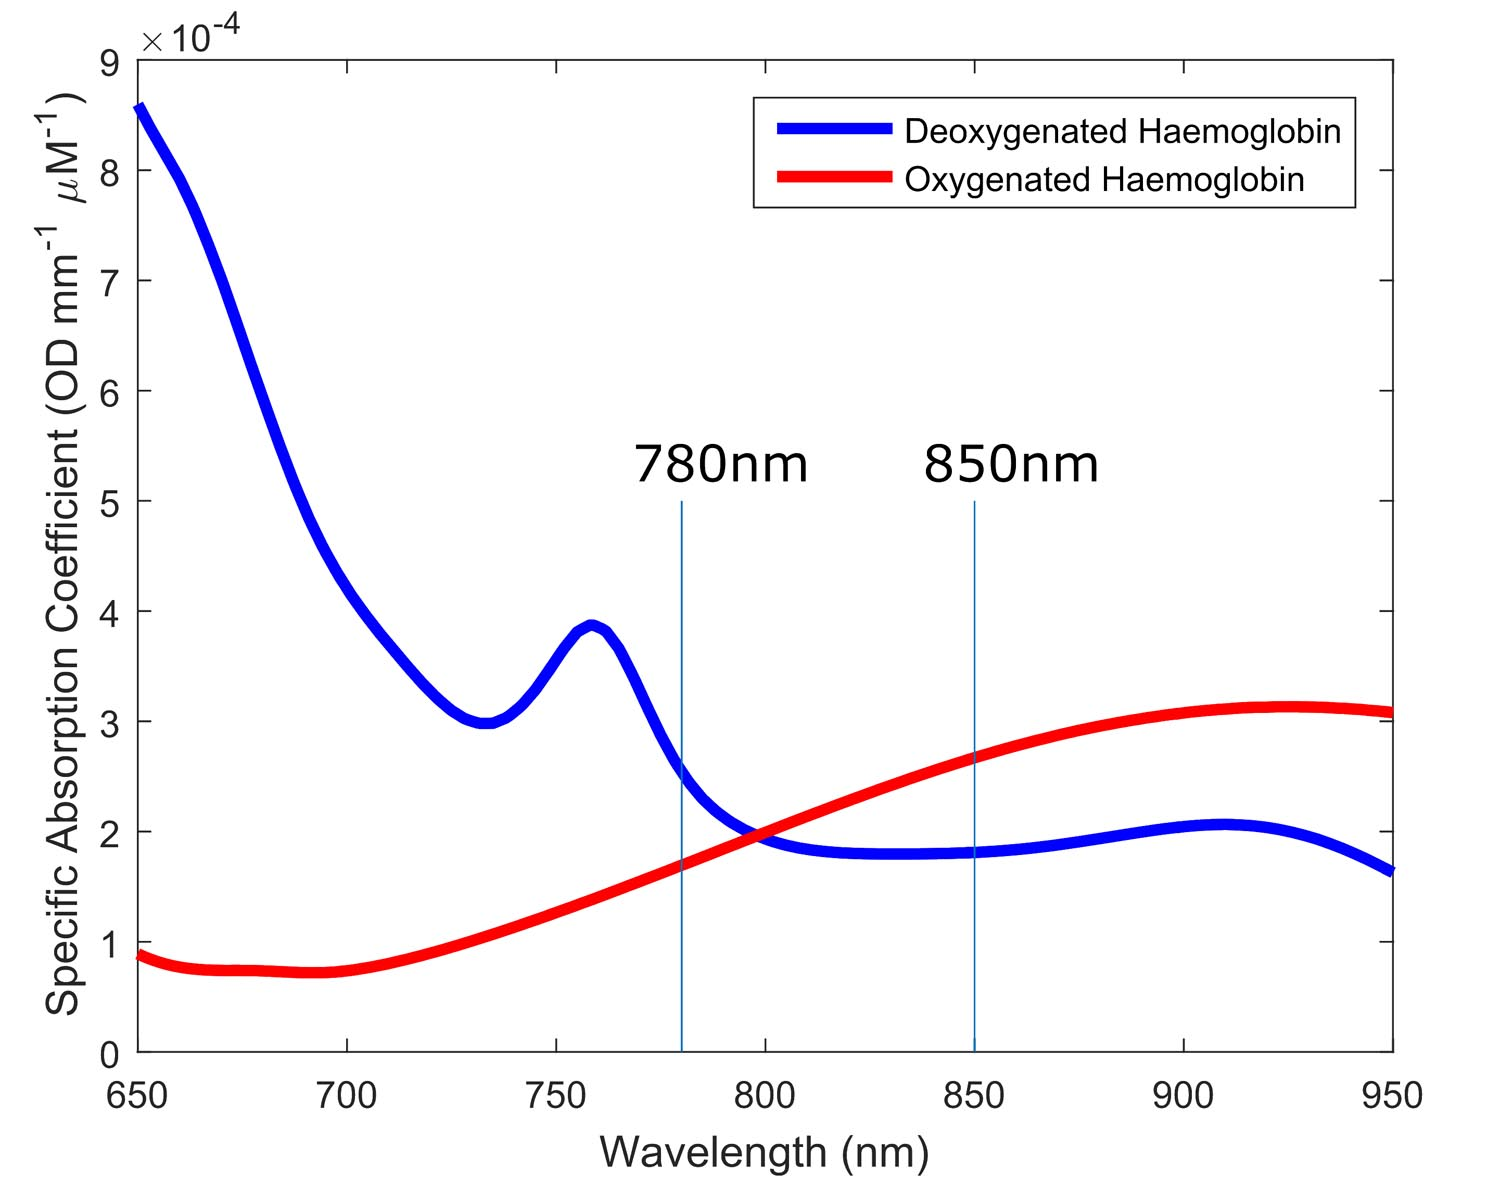 - The specific absorption spectra of oxygenated and deoxygenated haemoglobin. The Gowerlabs NTS Optical Imaging System employs two wavelengths of near-infrared light (usually 780nm and 850nm though 685 nm and 850nm is also common) to allow changes in the concentration of both forms of haemoglobin to be measured. See section 'A Window to the Brain' for more details. Tissue spectra courtesy of UCL's Biomedical Optics Research Laboratory.